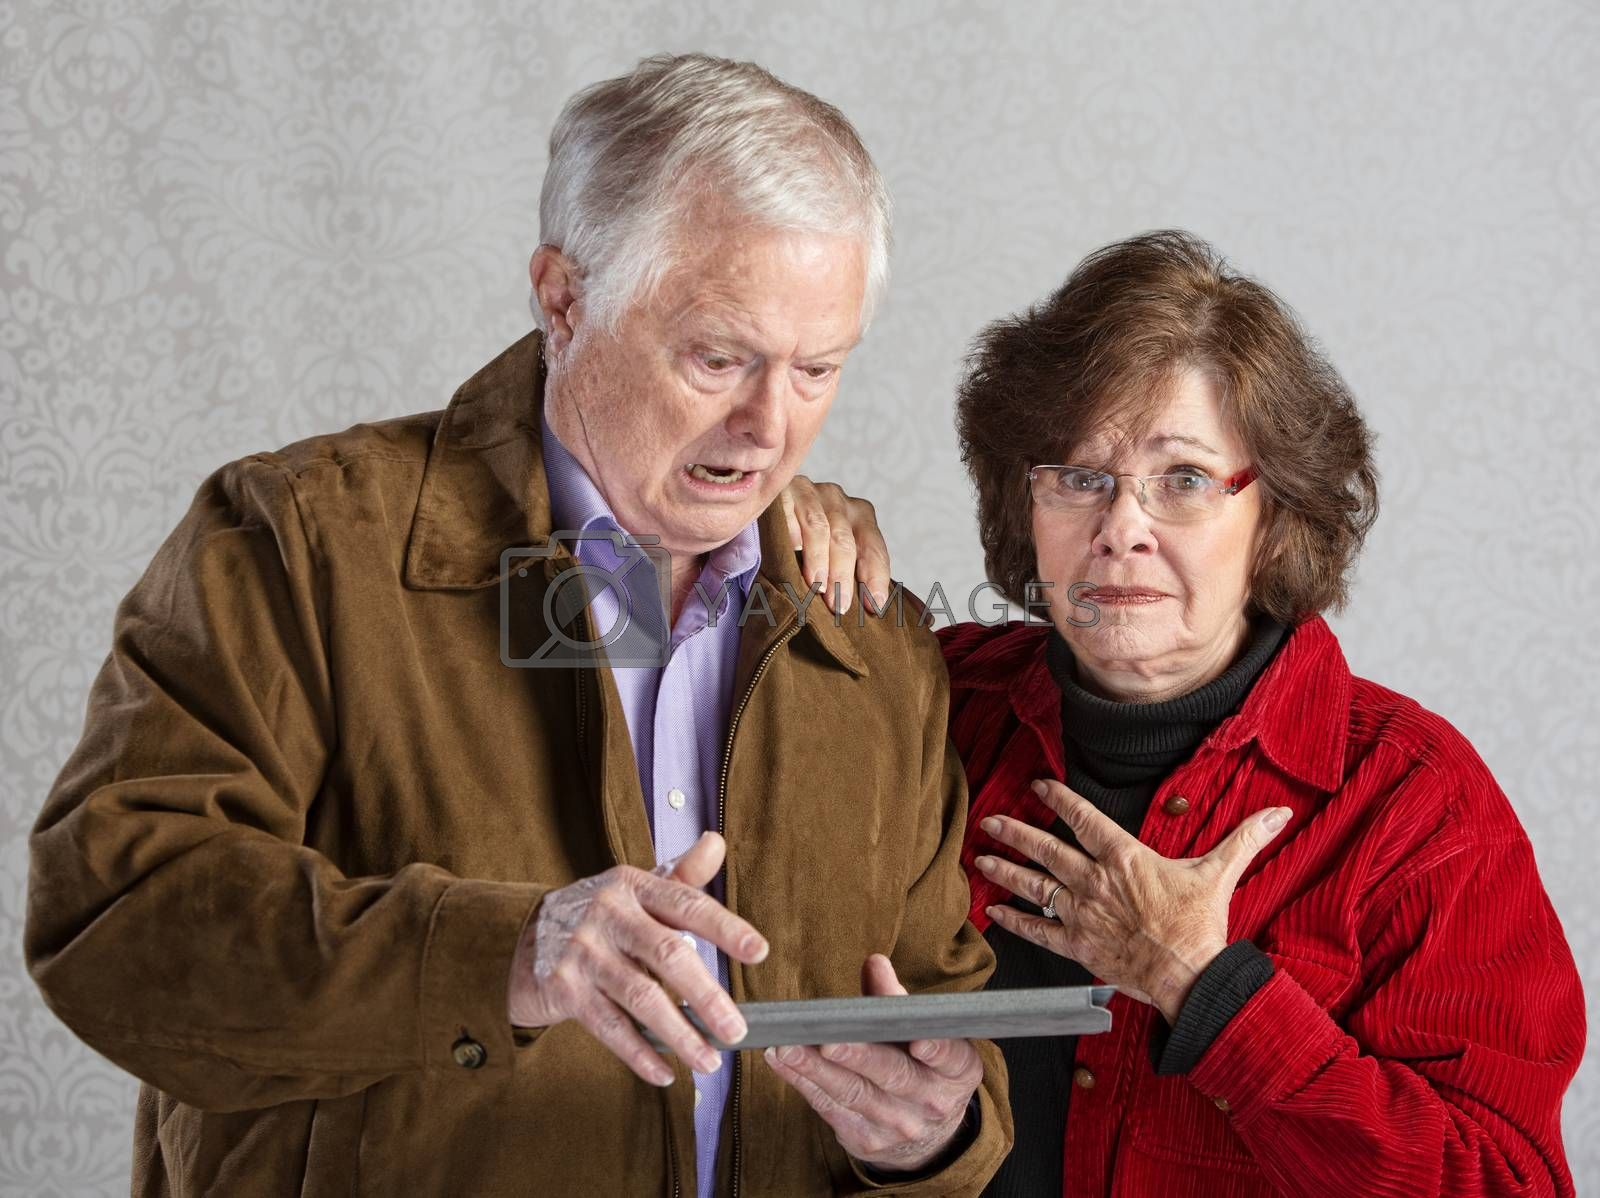 Angry man using tablet with embarrassed woman